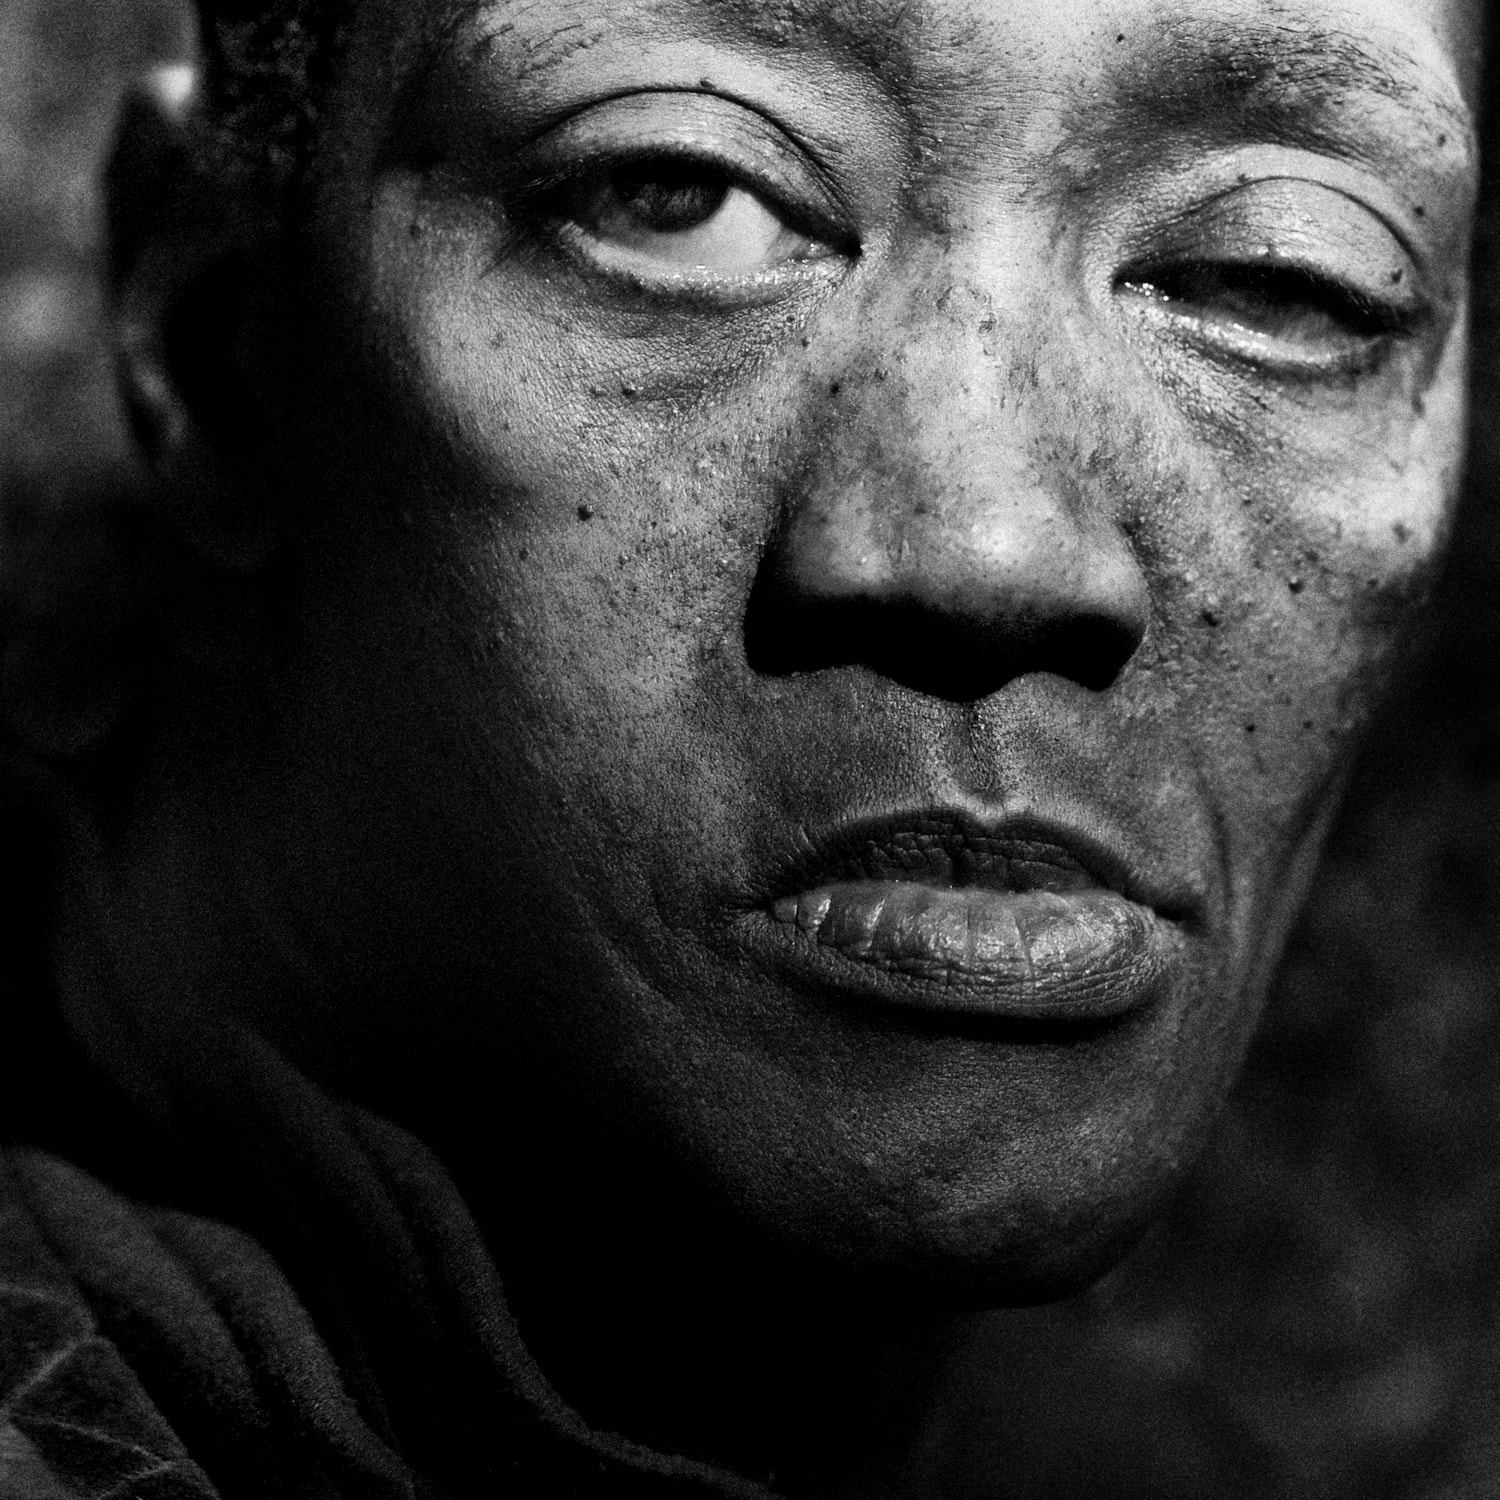 Photograph New York. by Lee Jeffries on 500px